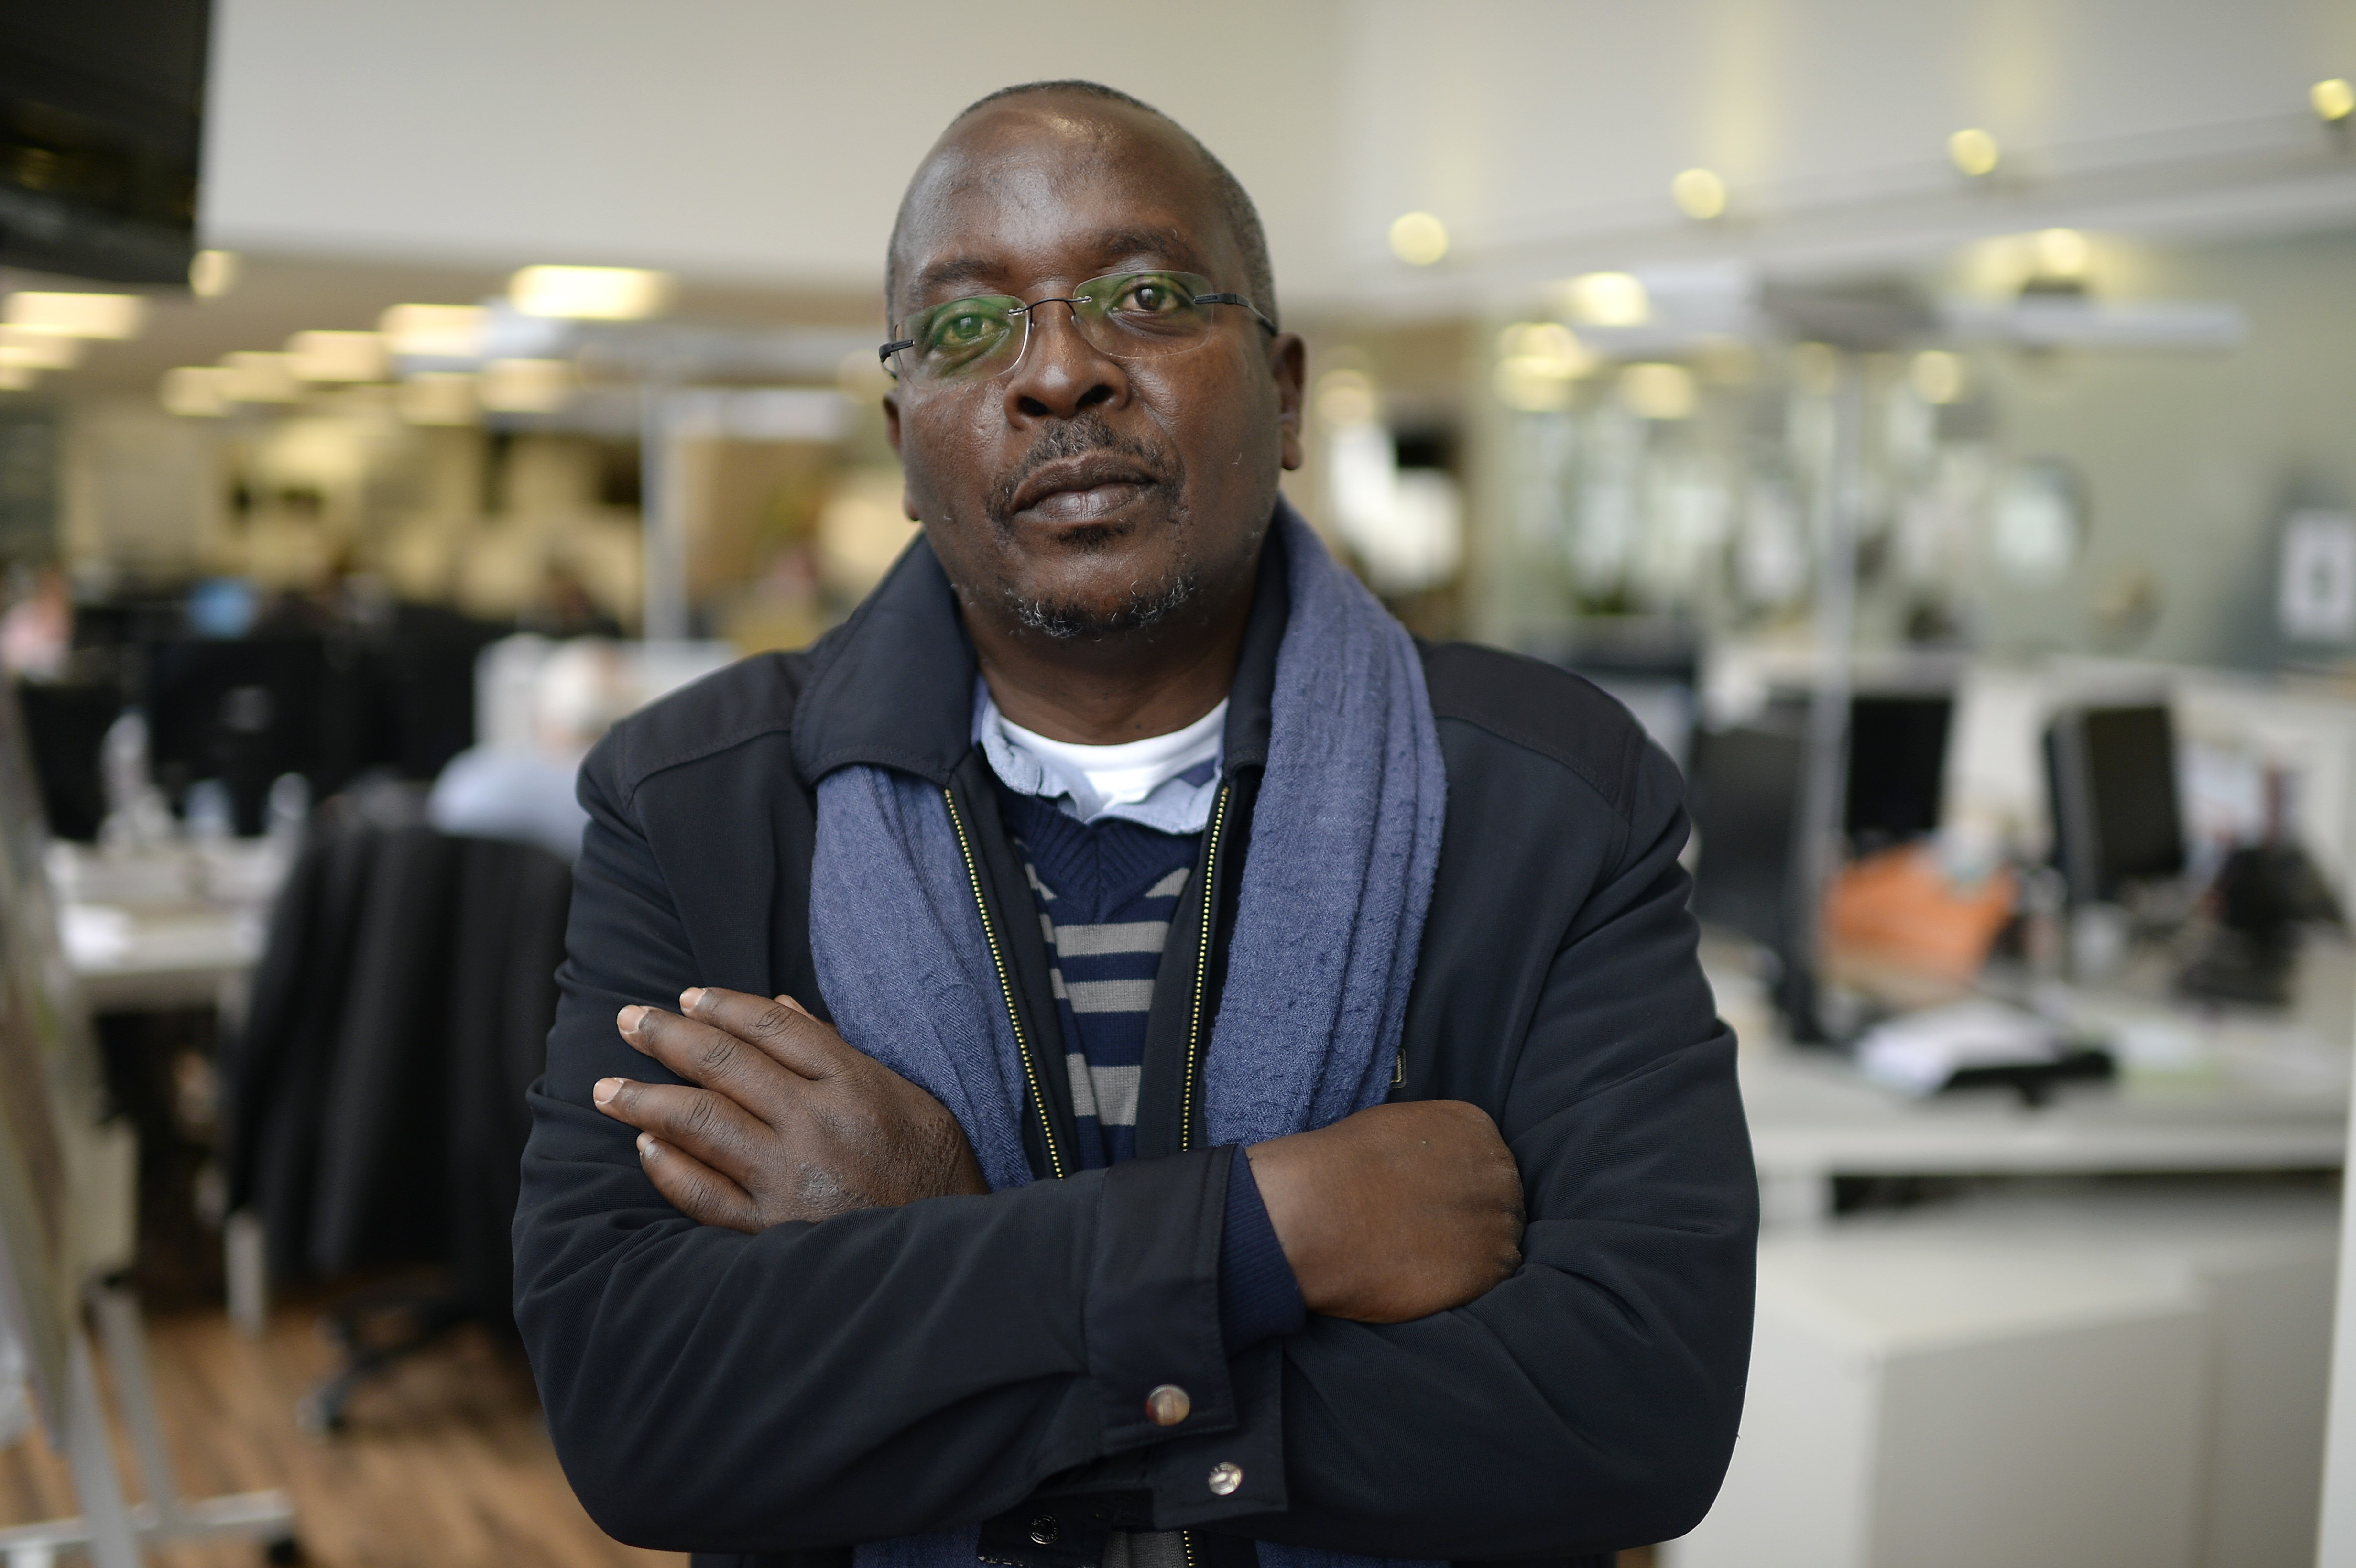 Burundi-based AFP journalist Esdras Ndikumana poses at the Agence France-Presse (AFP) headquarters in Paris on October 19, 2015. Ndikumana, 54, was taking pictures at the scene of the assassination of a top general in the capital Bujumbura on August 2, when he was arrested by members of the National Intelligence Service (SNR). He was held for around two hours, during which he was subjected to severe beatings on his back, legs and the soles of his feet. AFP PHOTO / MIGUEL MEDINA        (Photo credit should read MIGUEL MEDINA/AFP/Getty Images)